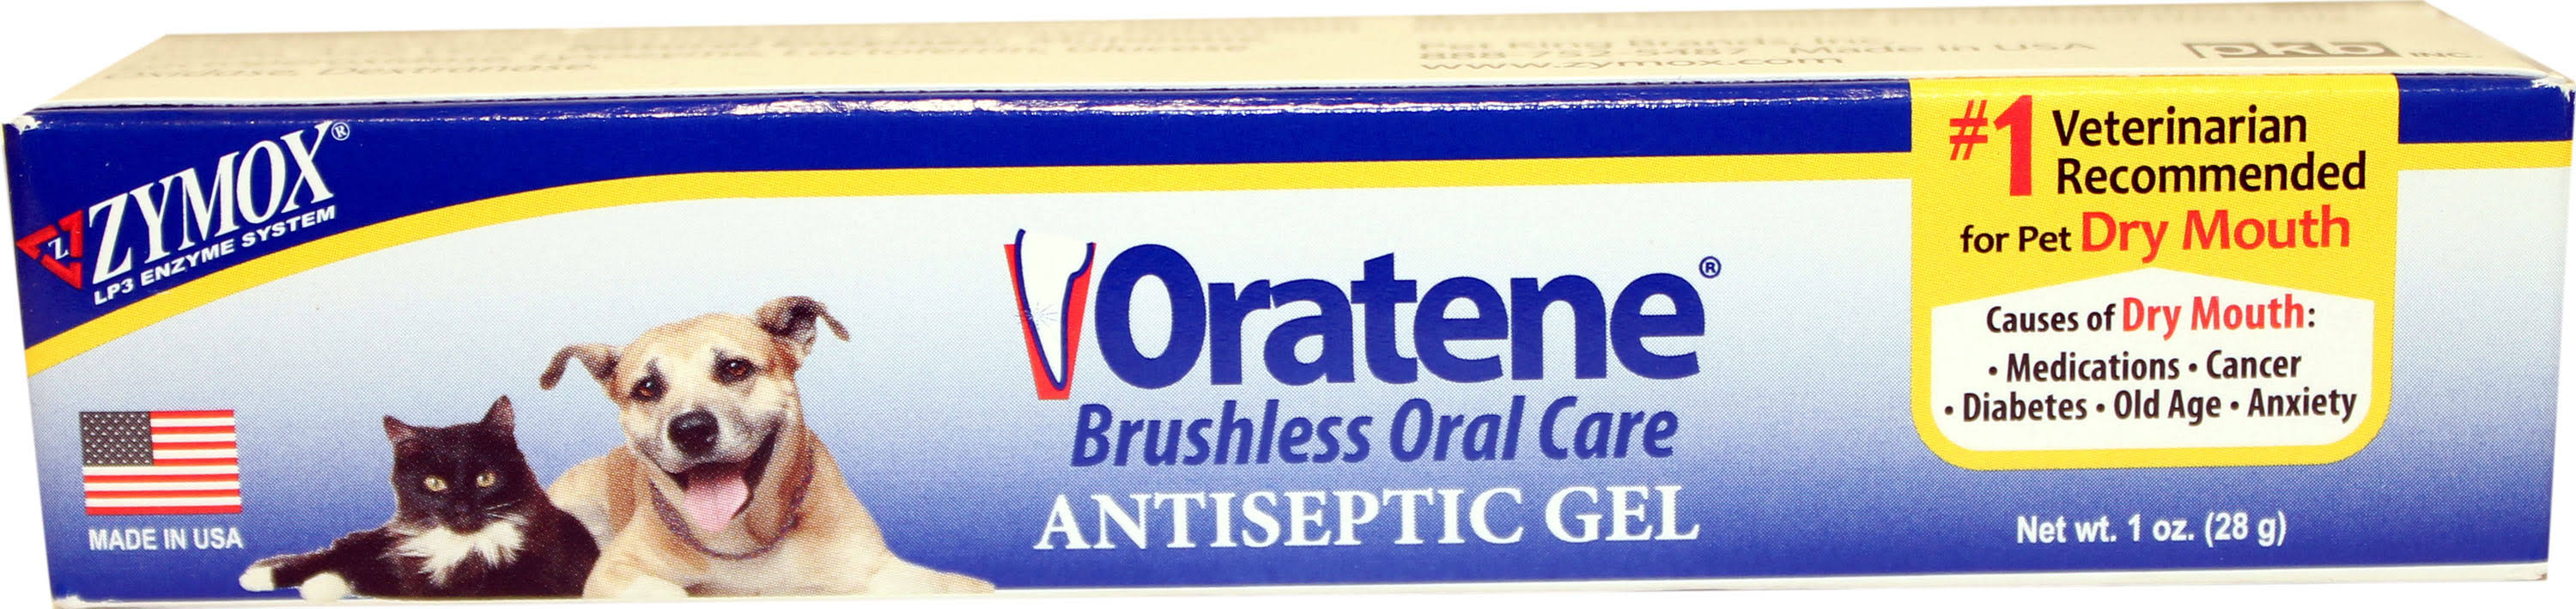 Oratene Veterinarian Antiseptic Oral Gel for Dogs and Cats - 1oz